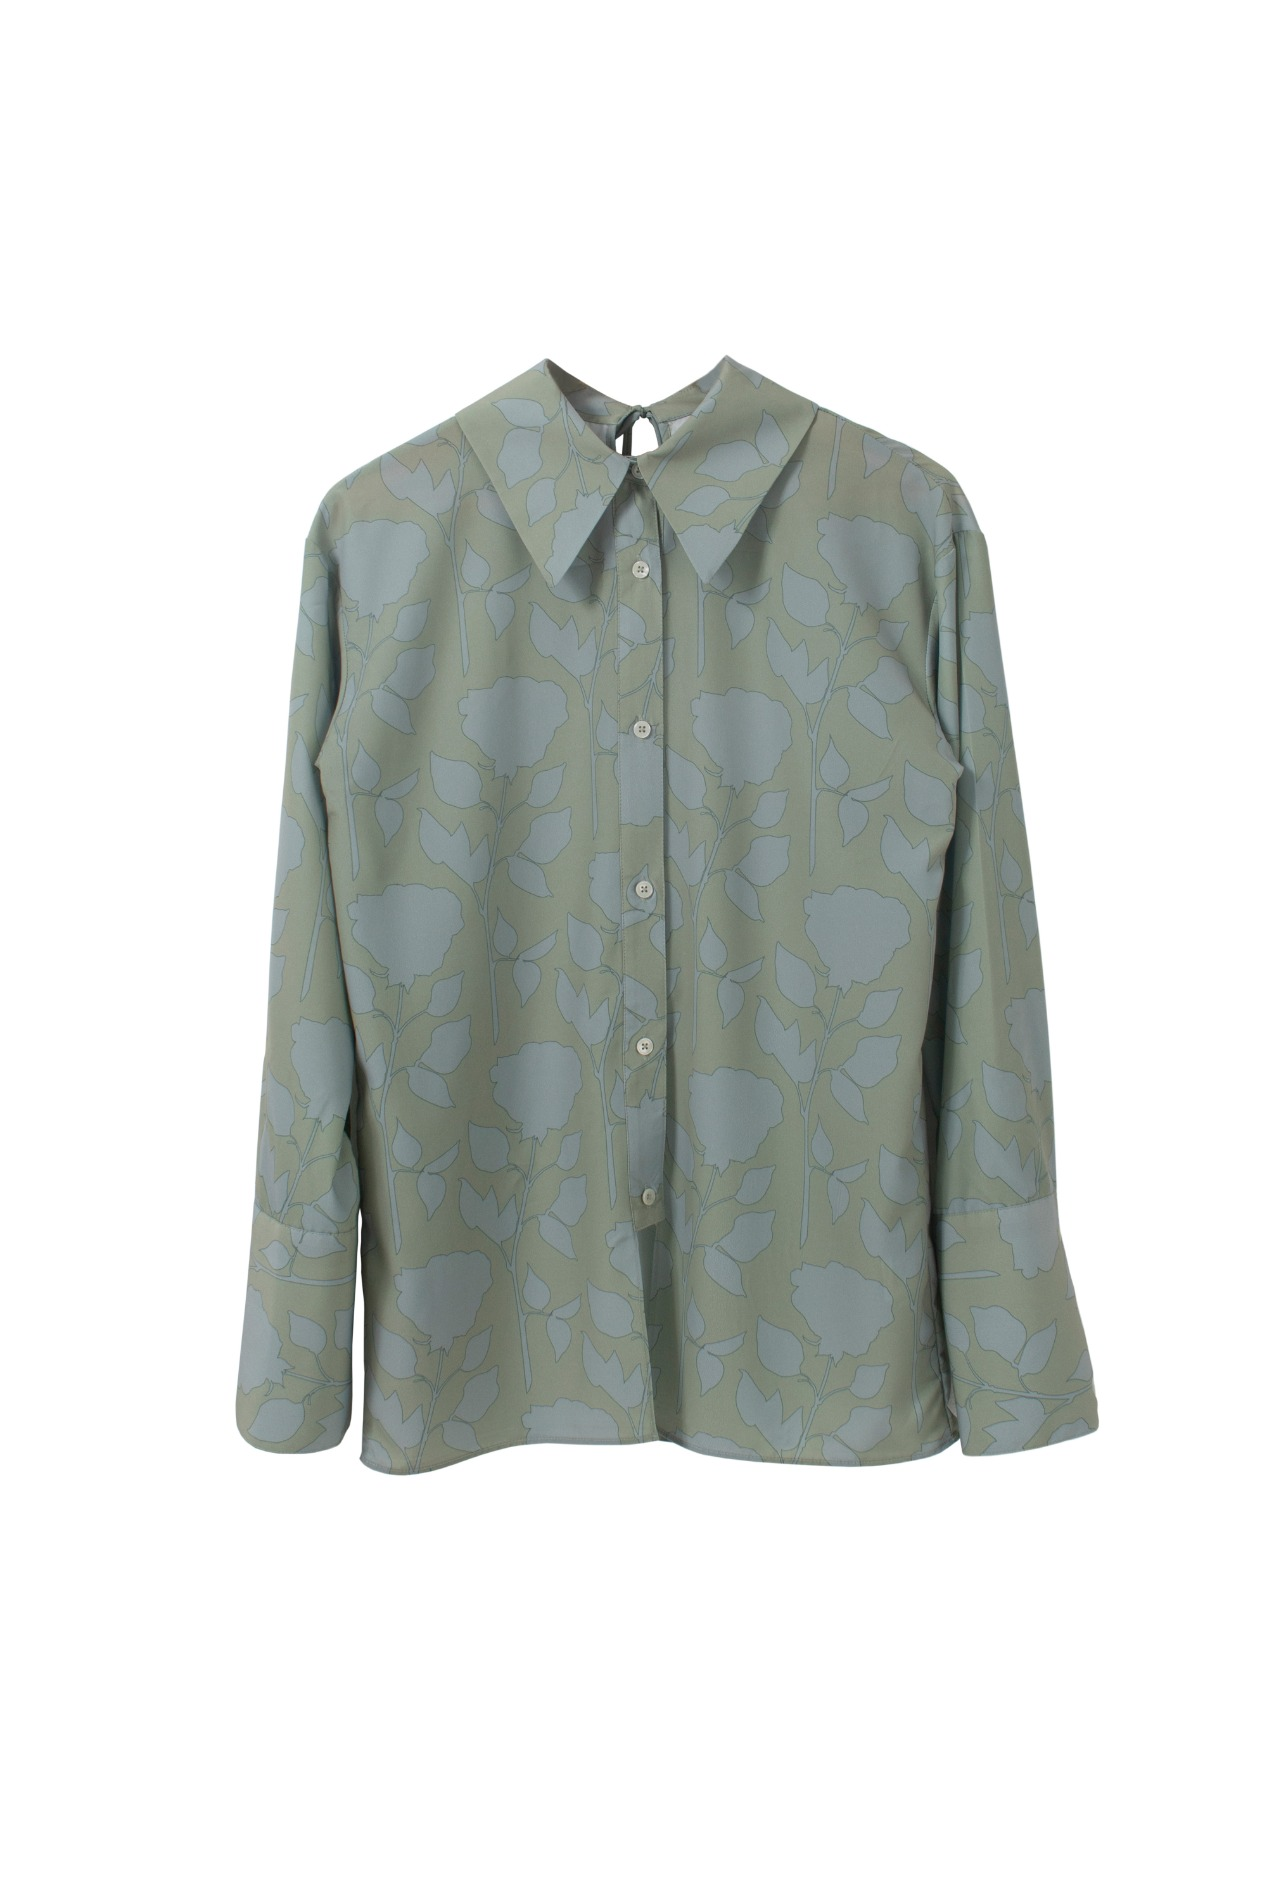 Rose sauvage blouse (green)